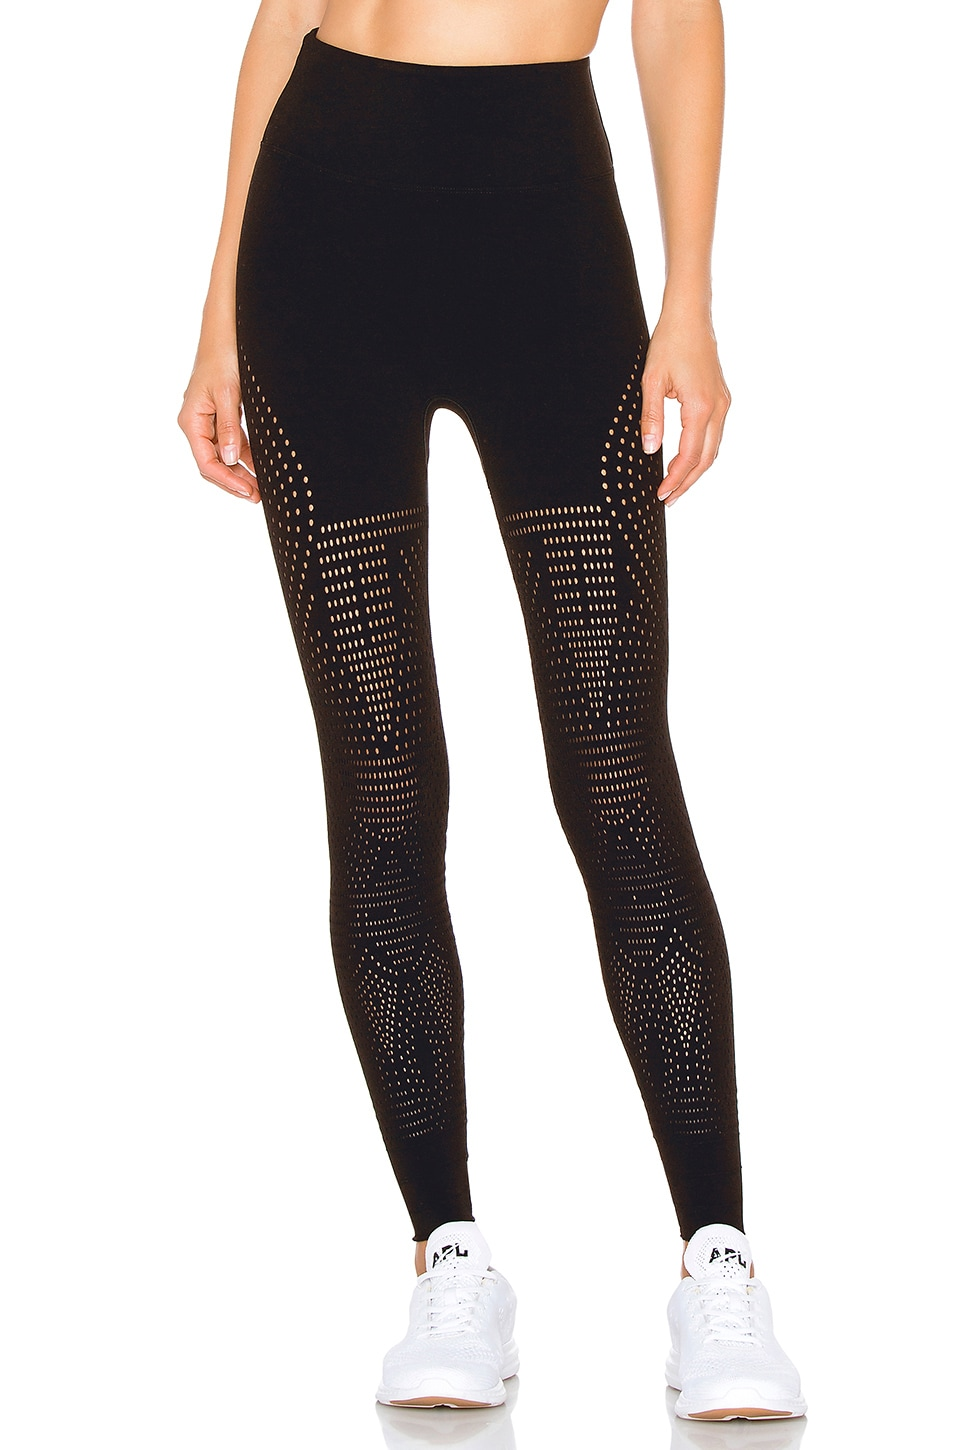 Free People Movement High Rise Adjustable Length Ecology Legging in Black